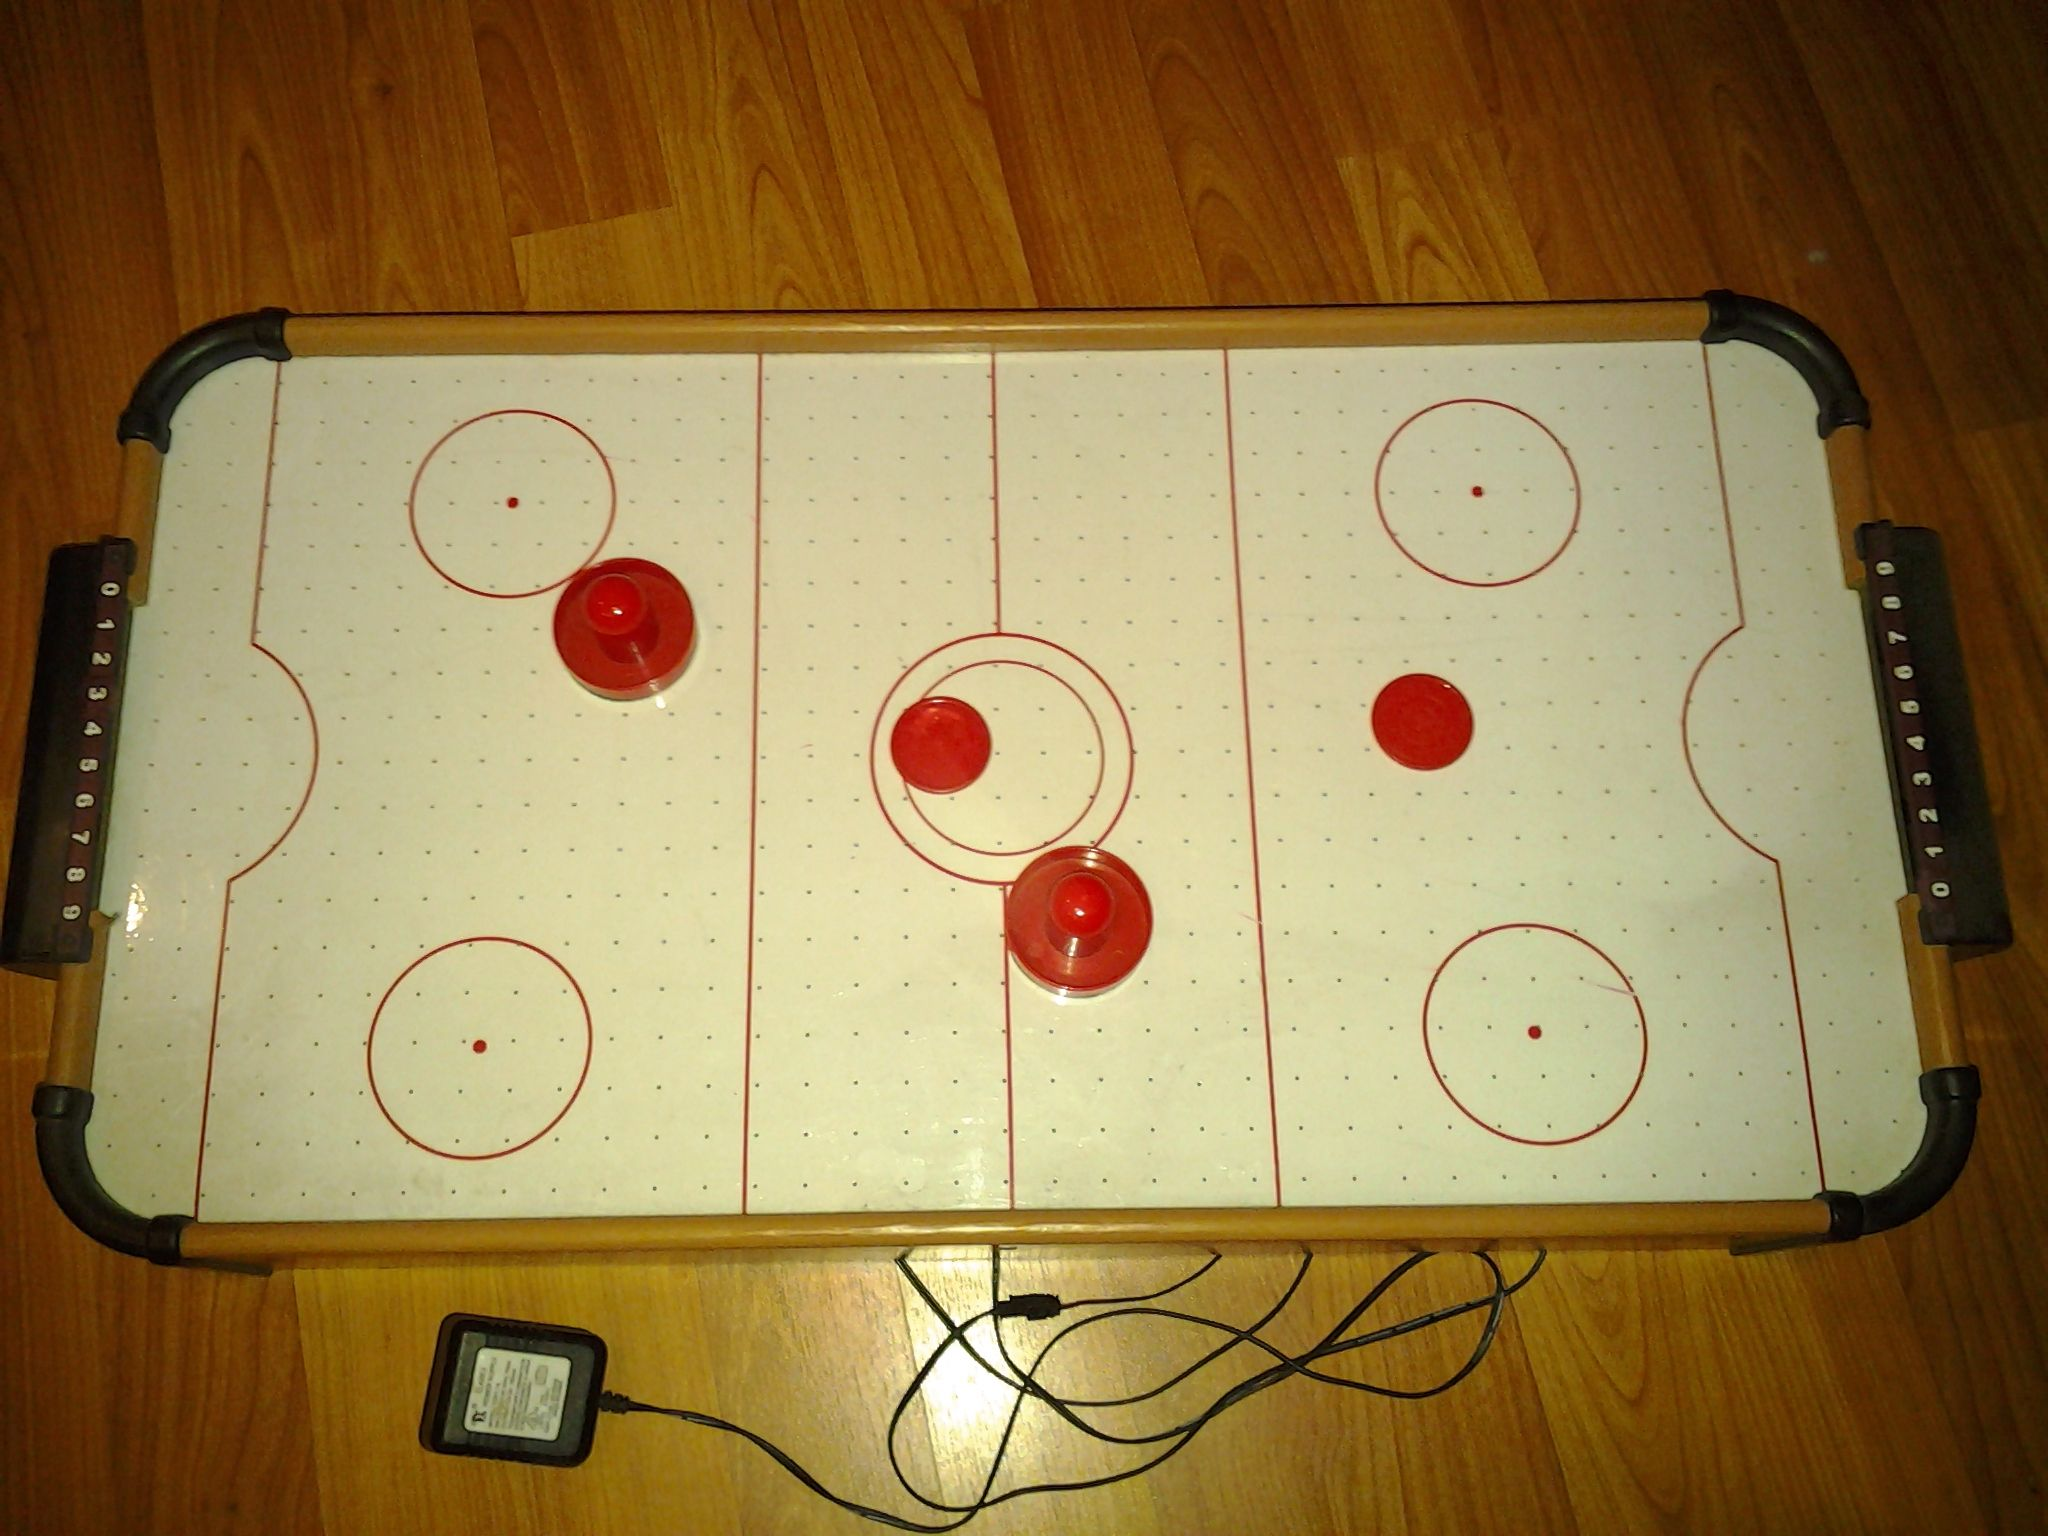 Table Air Hockey Game In Working Just Fine S Garage Sale Marietta Ga Air Hockey Games Air Hockey Garage Sales